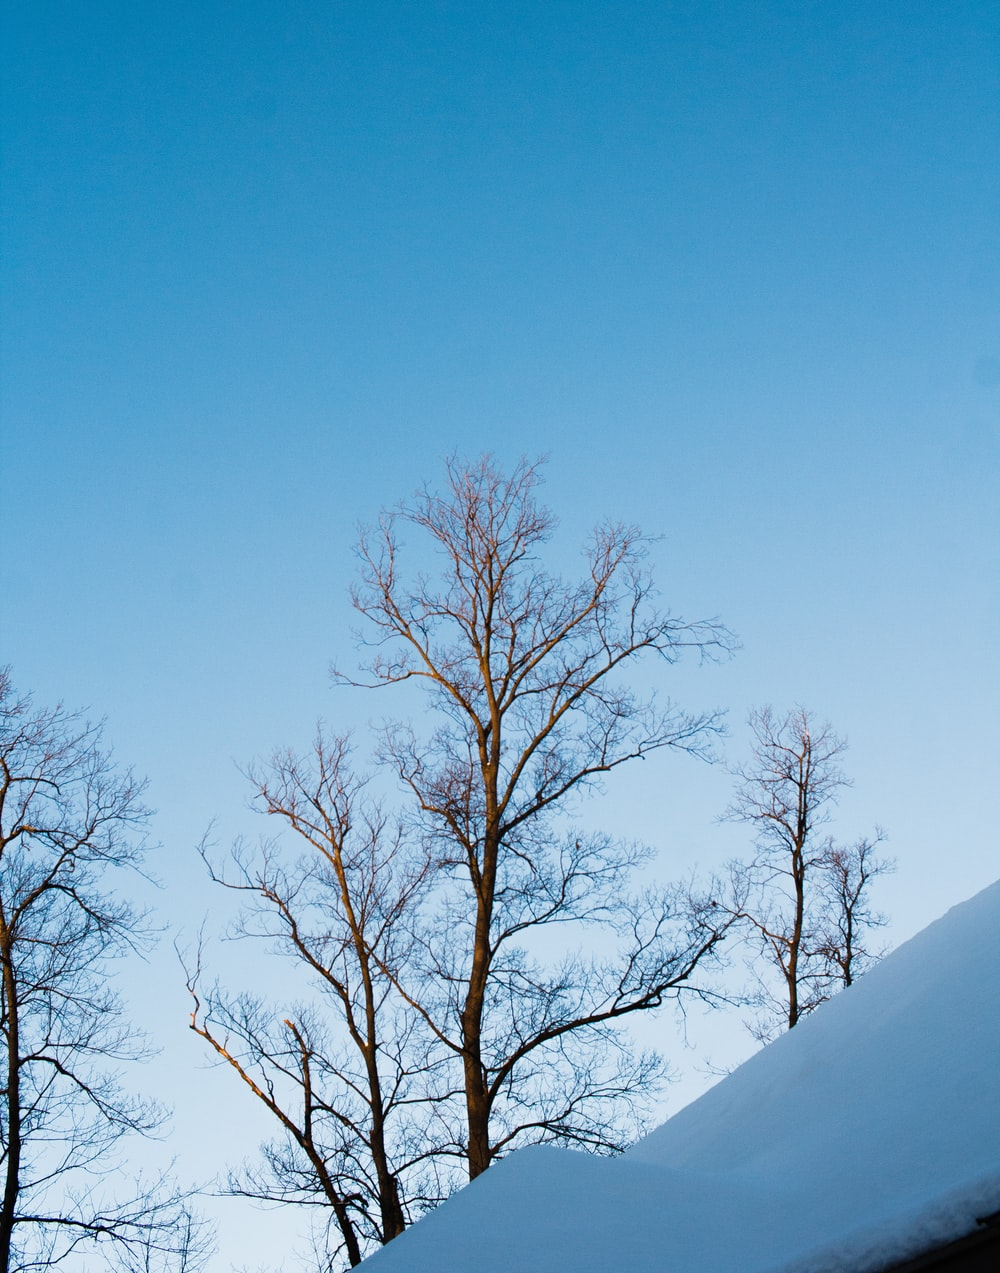 bare tree on snow covered ground under blue sky during daytime